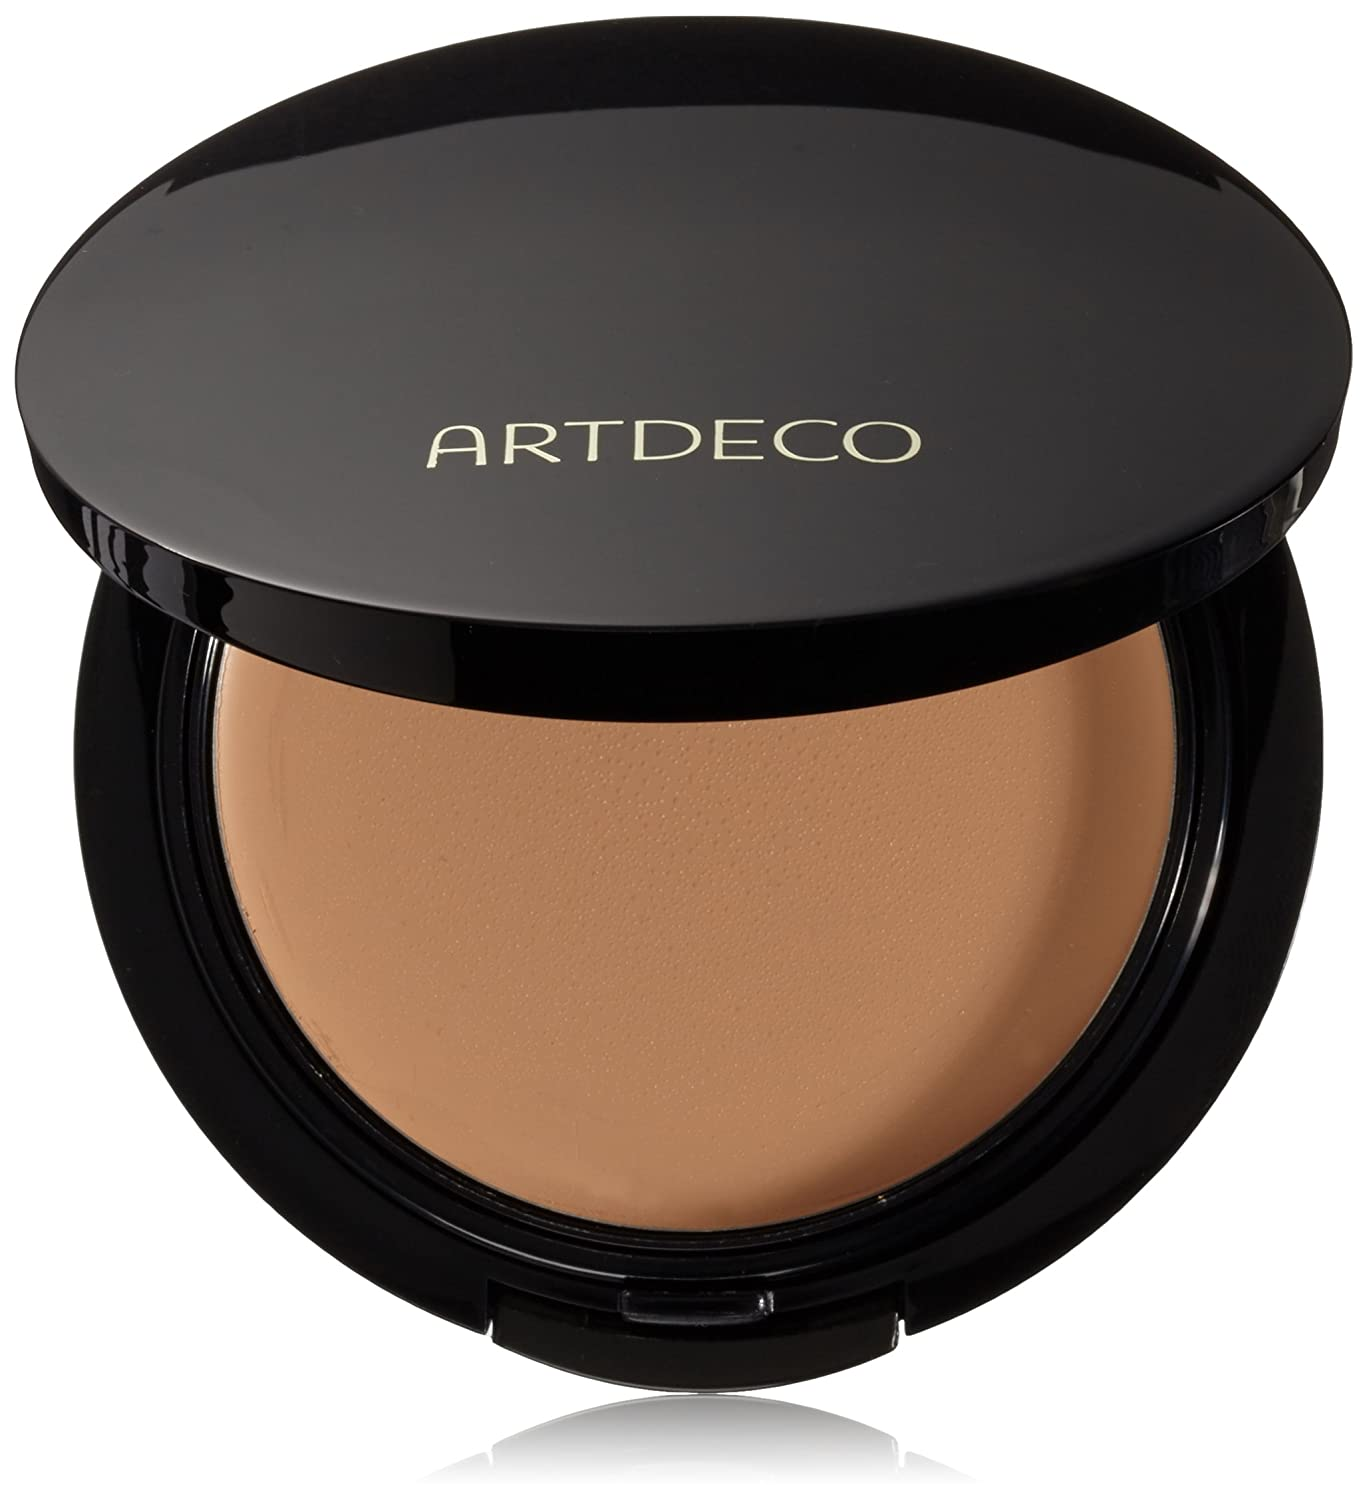 Artdeco Make-Up femme/woman, Double Finish Nummer 9 Light cashmere (9g), 1er Pack (1 x 9 g) 4019674046197